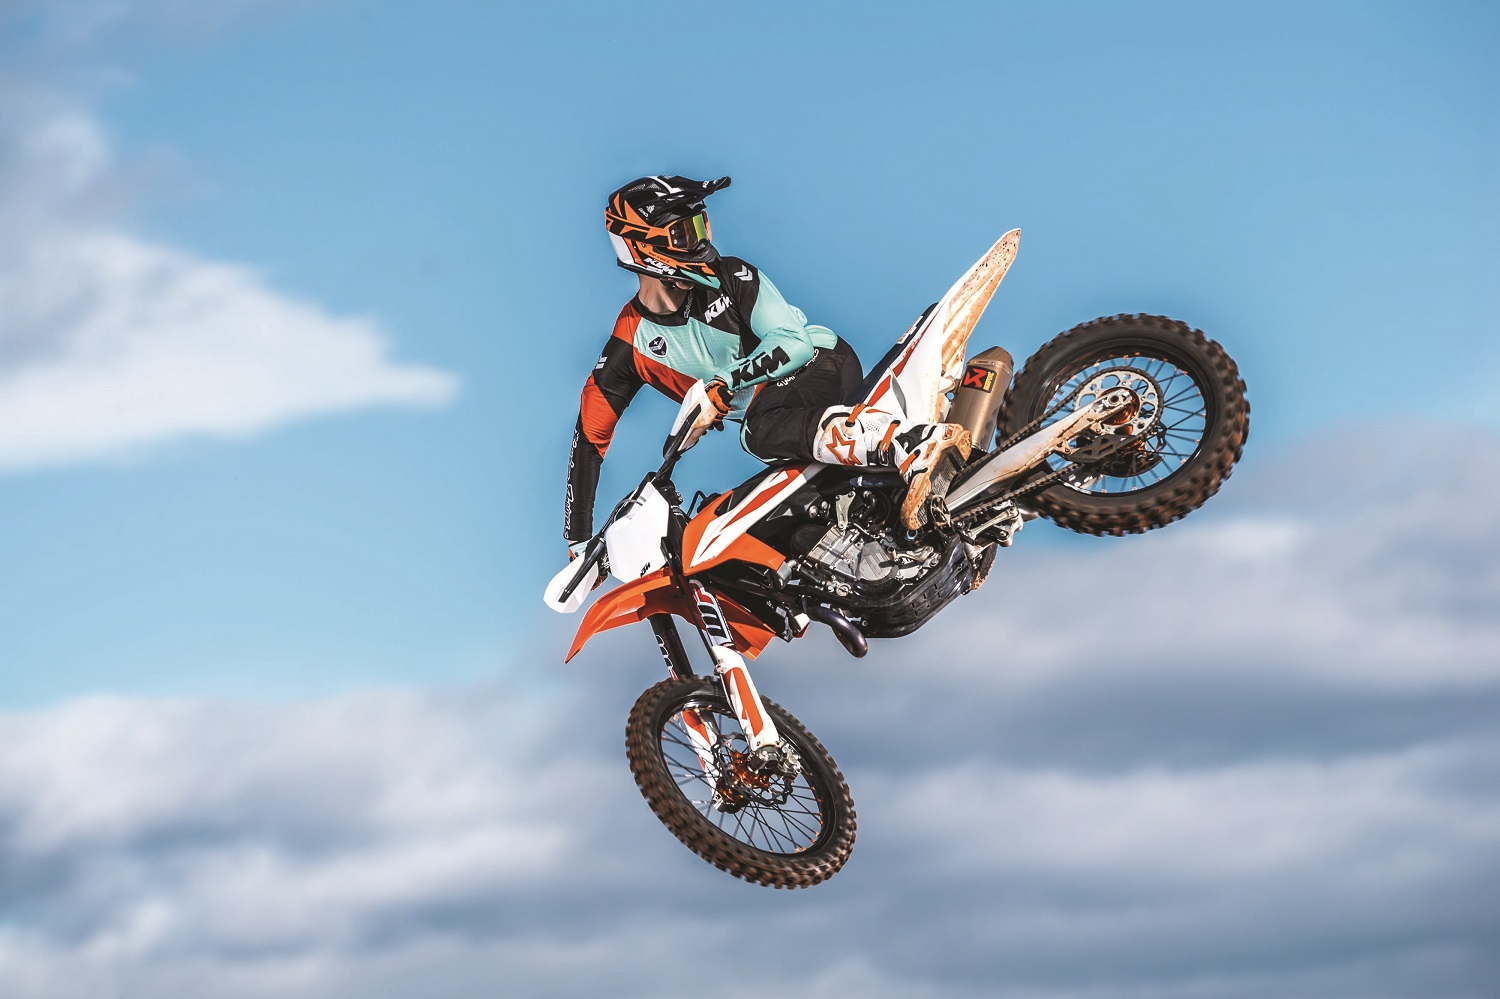 03_Action_KTM 450 SX-F MY2019